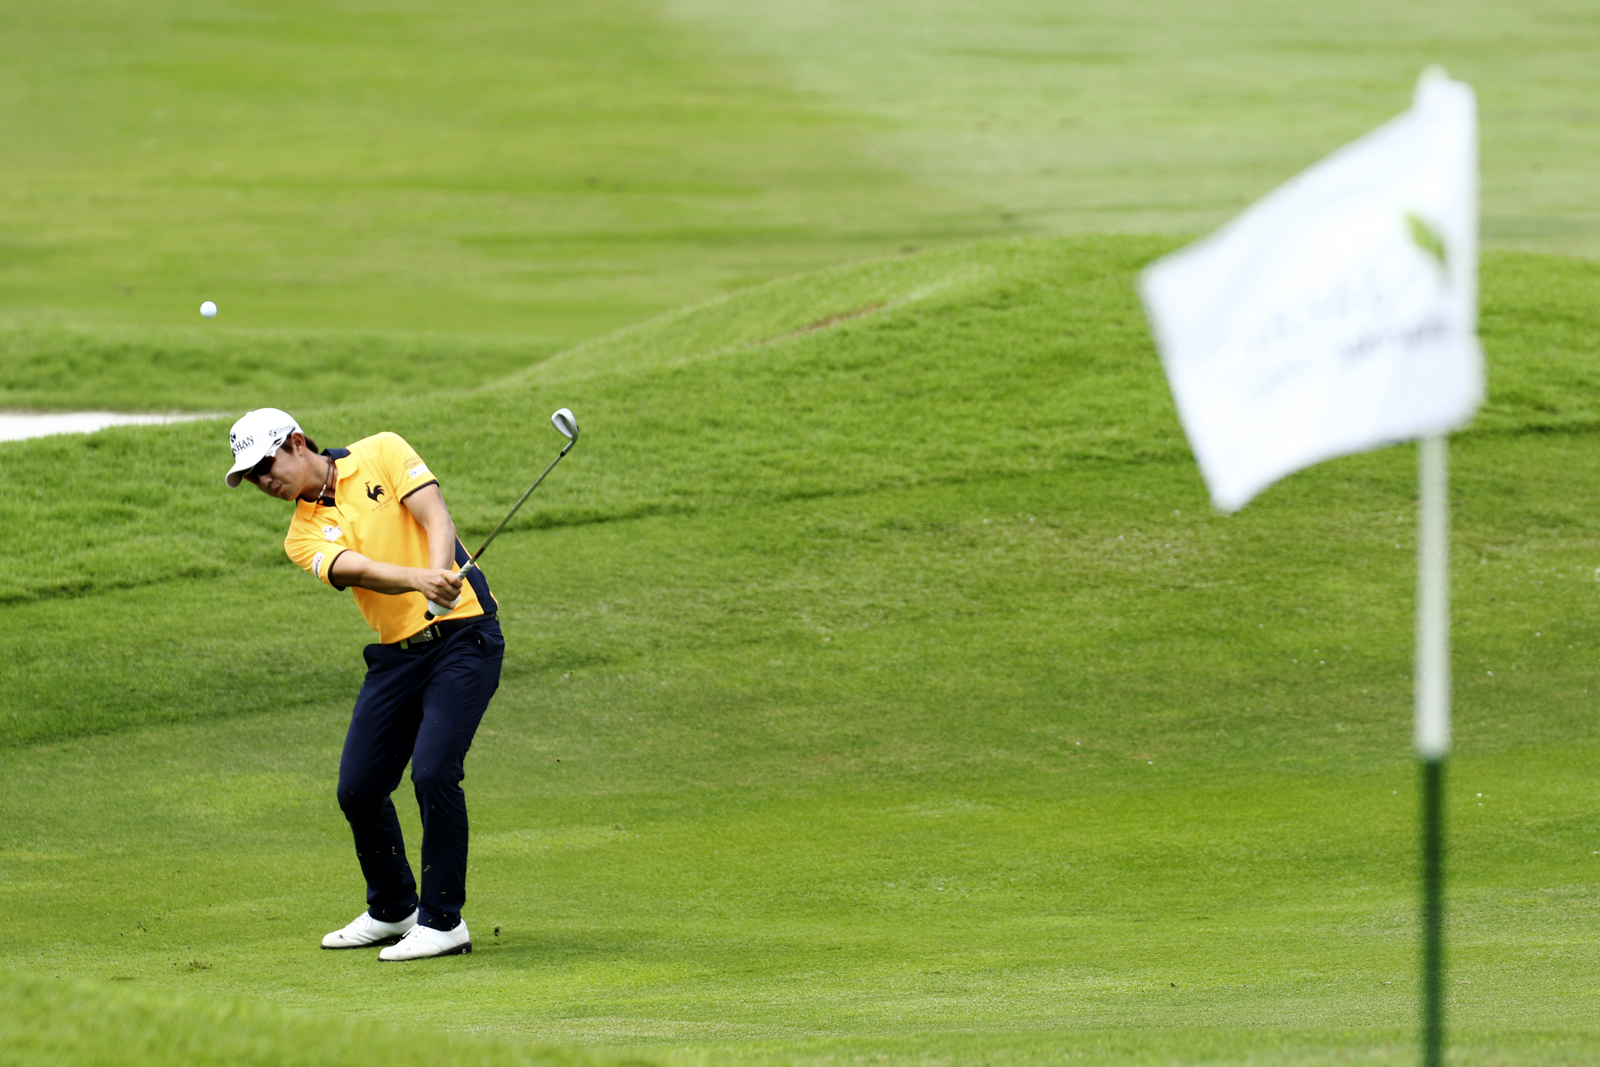 Song Younghan of South Korea hits a shot on the 18th green during the SMBC Singapore Open golf tournament at Sentosa's Serapong golf course in Singapore January 22, 2017.